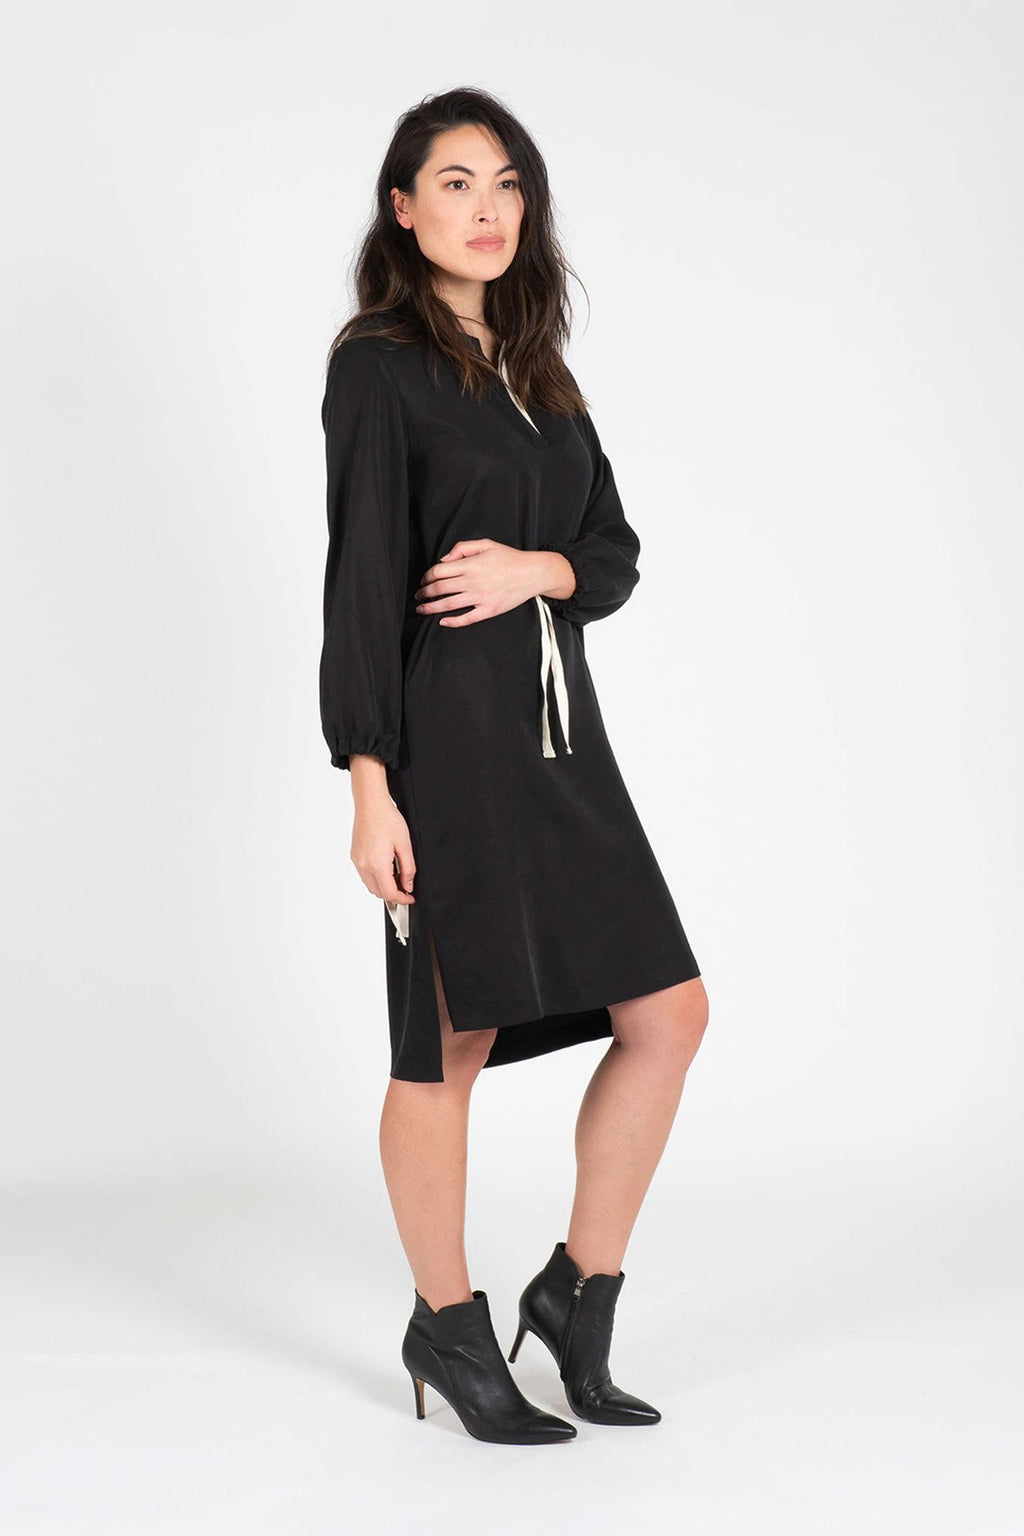 Black Tencel Henley Neck Shift Dress Dresses Ethical Sustainable Vegan Organic Australian fashion womens clothes